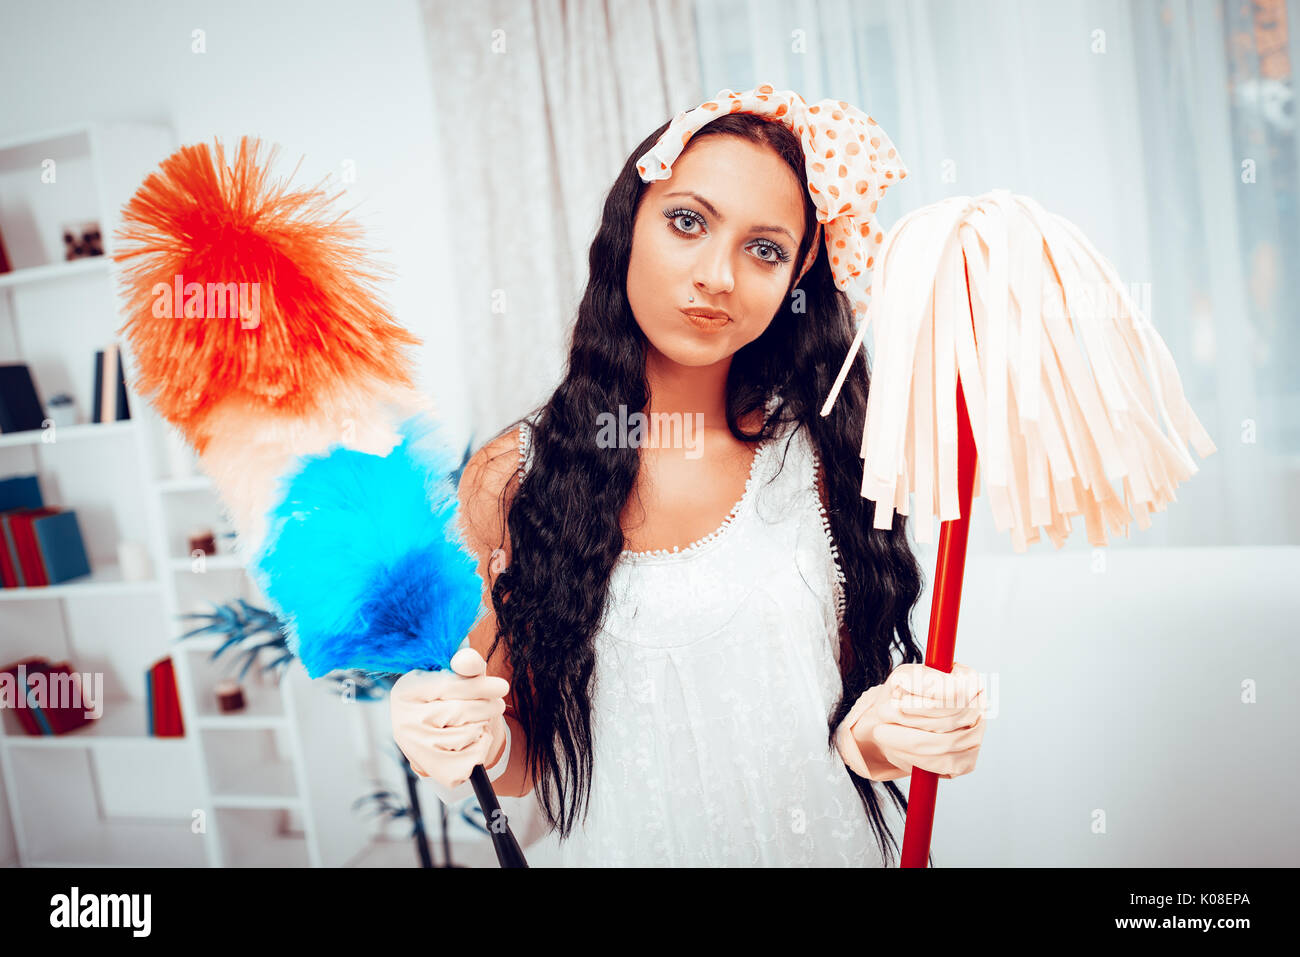 Portrait of a bored young housewife holding a cleaning equipment. Looking at camera. - Stock Image